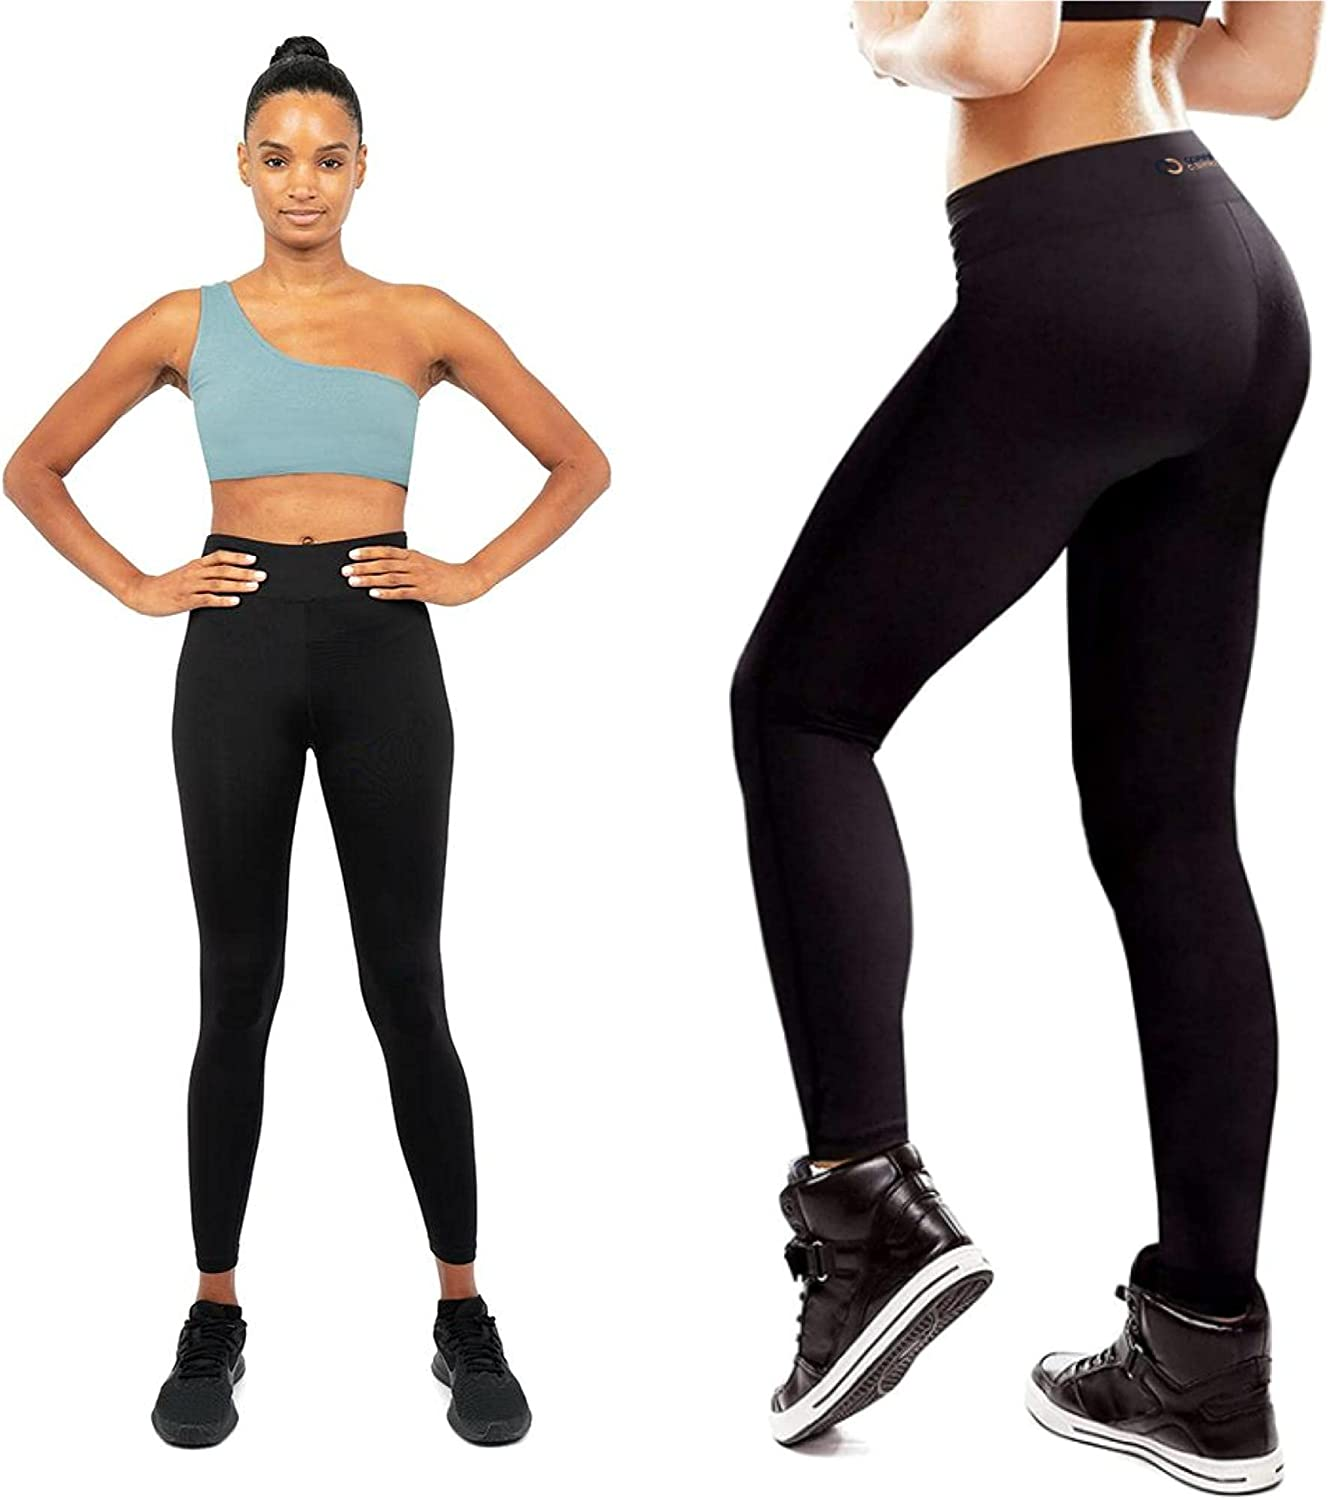 Copper Compression Womens Colorado Springs Mall Leggings - Pan High Tights Yoga Waist Shipping included